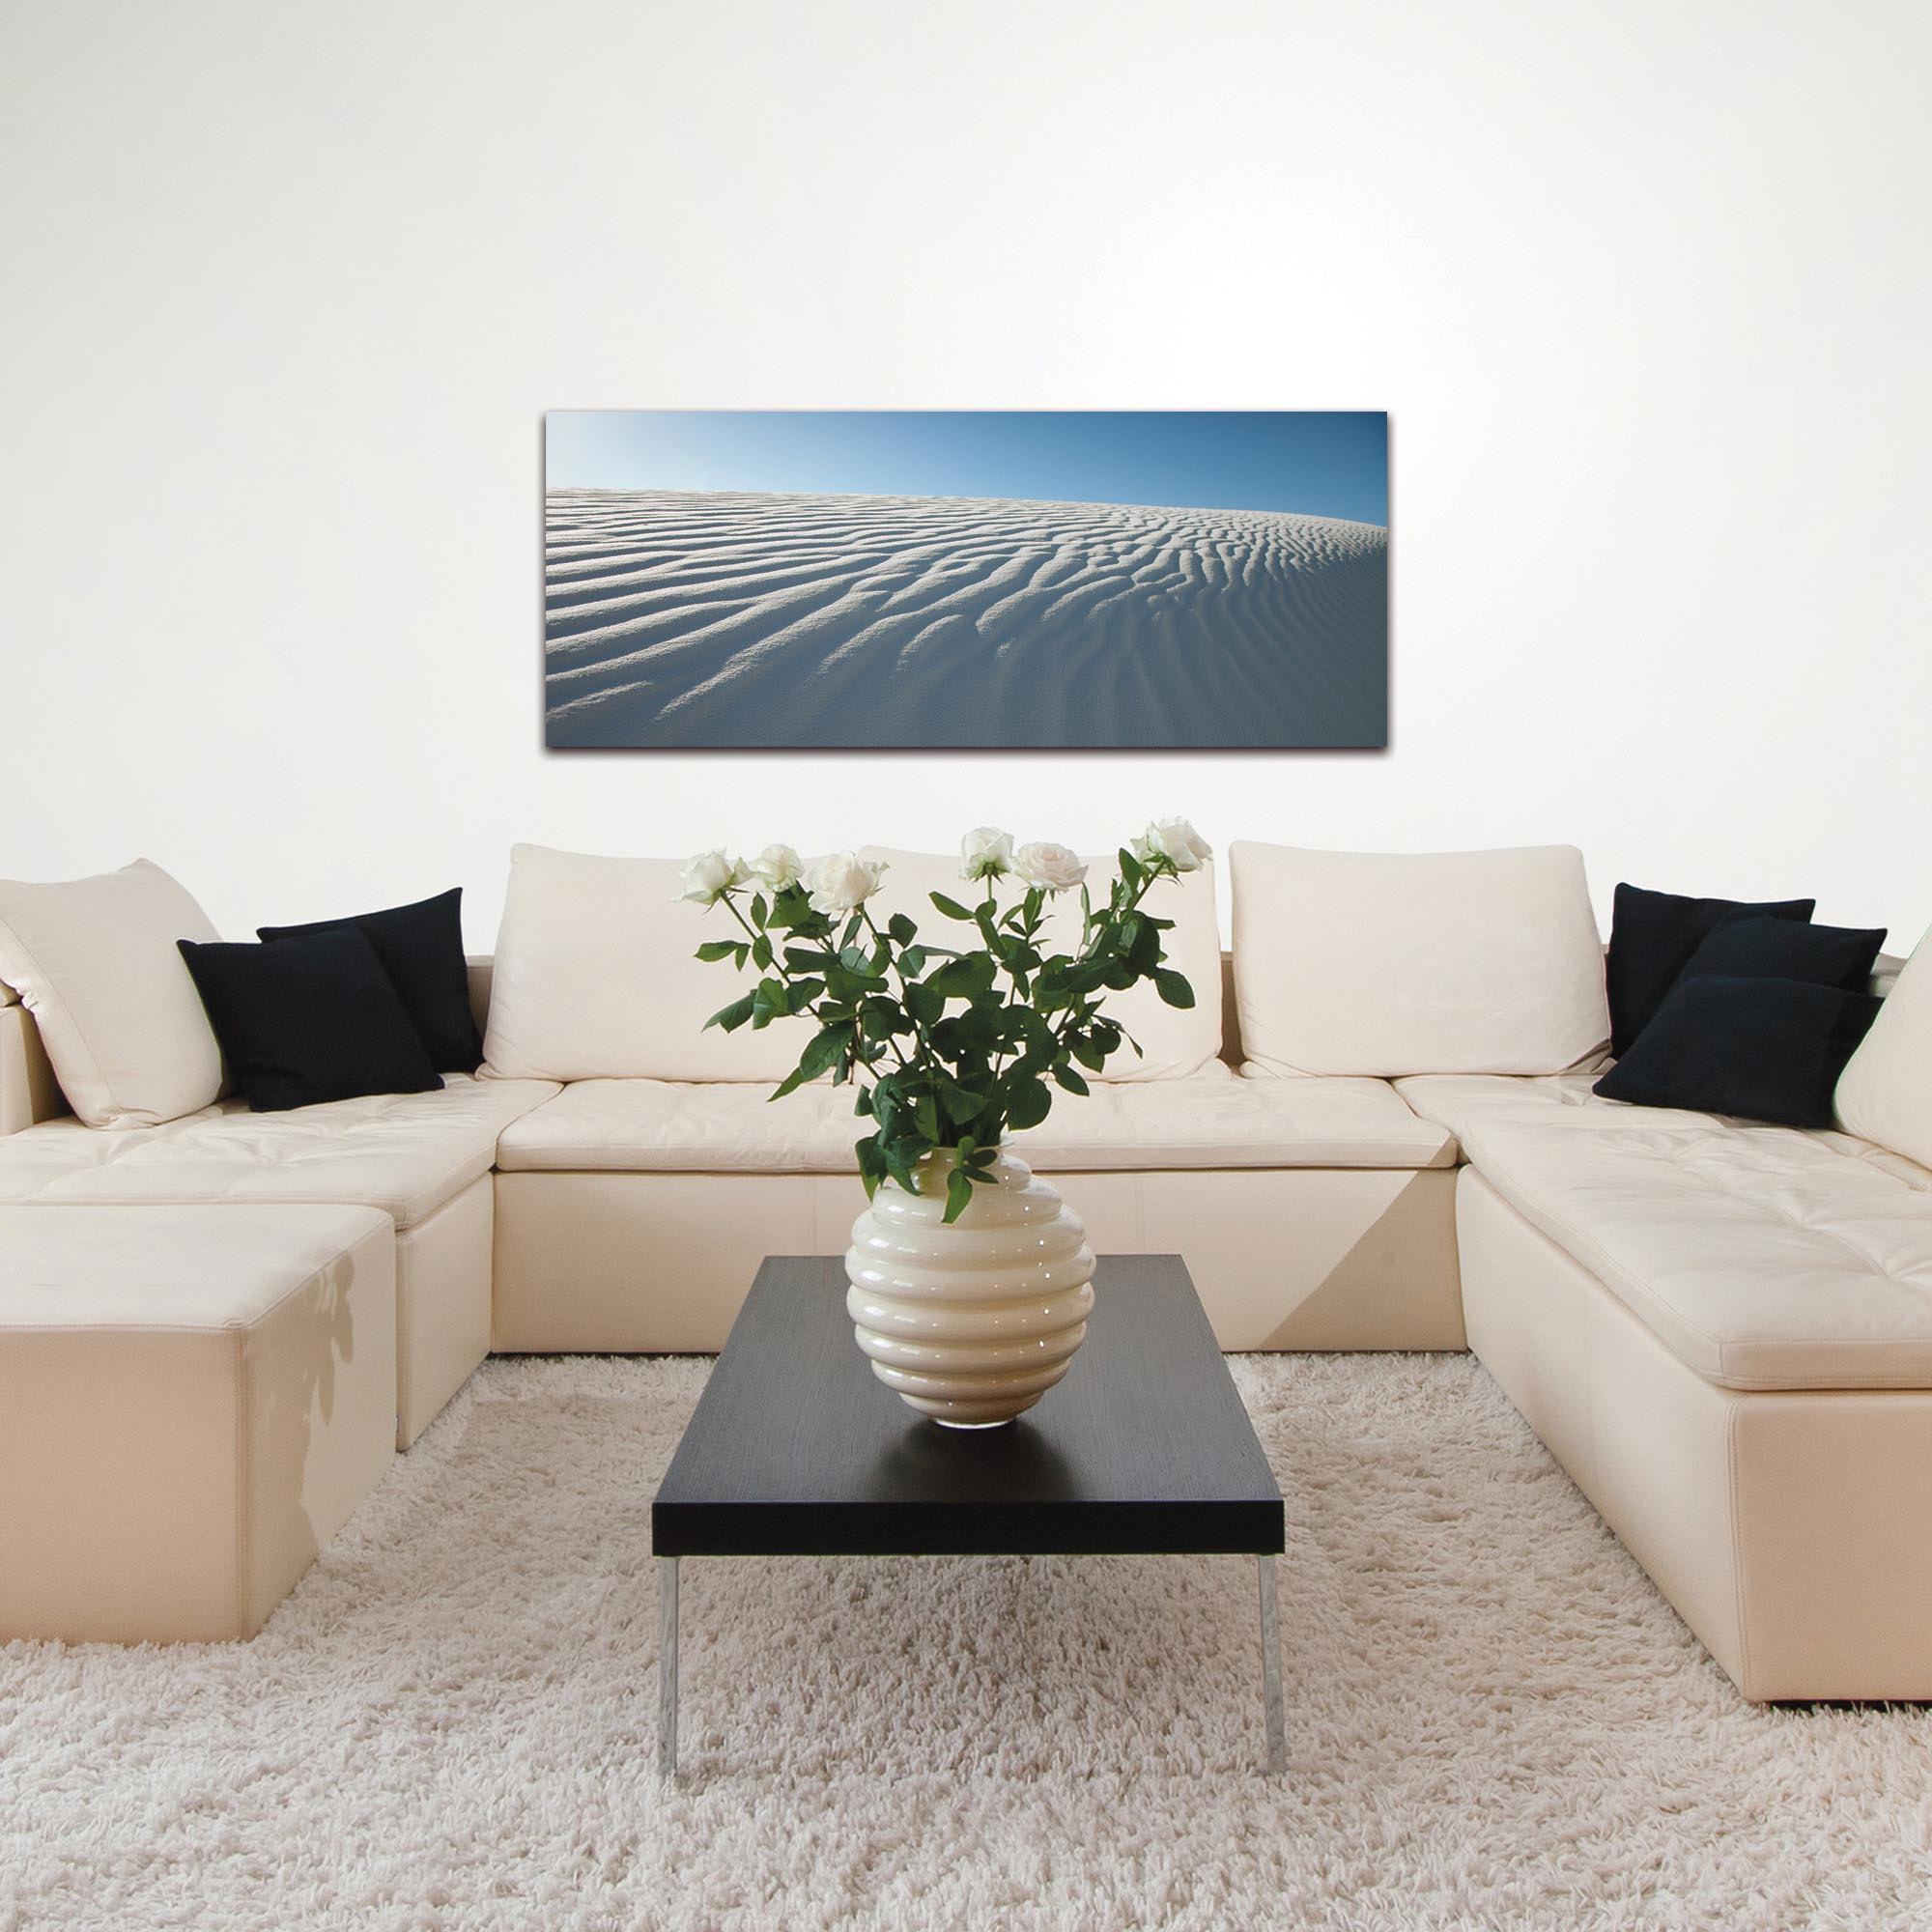 Landscape Photography 'Rippled Sand' - Sand Dunes Art on Metal or Plexiglass - Lifestyle View